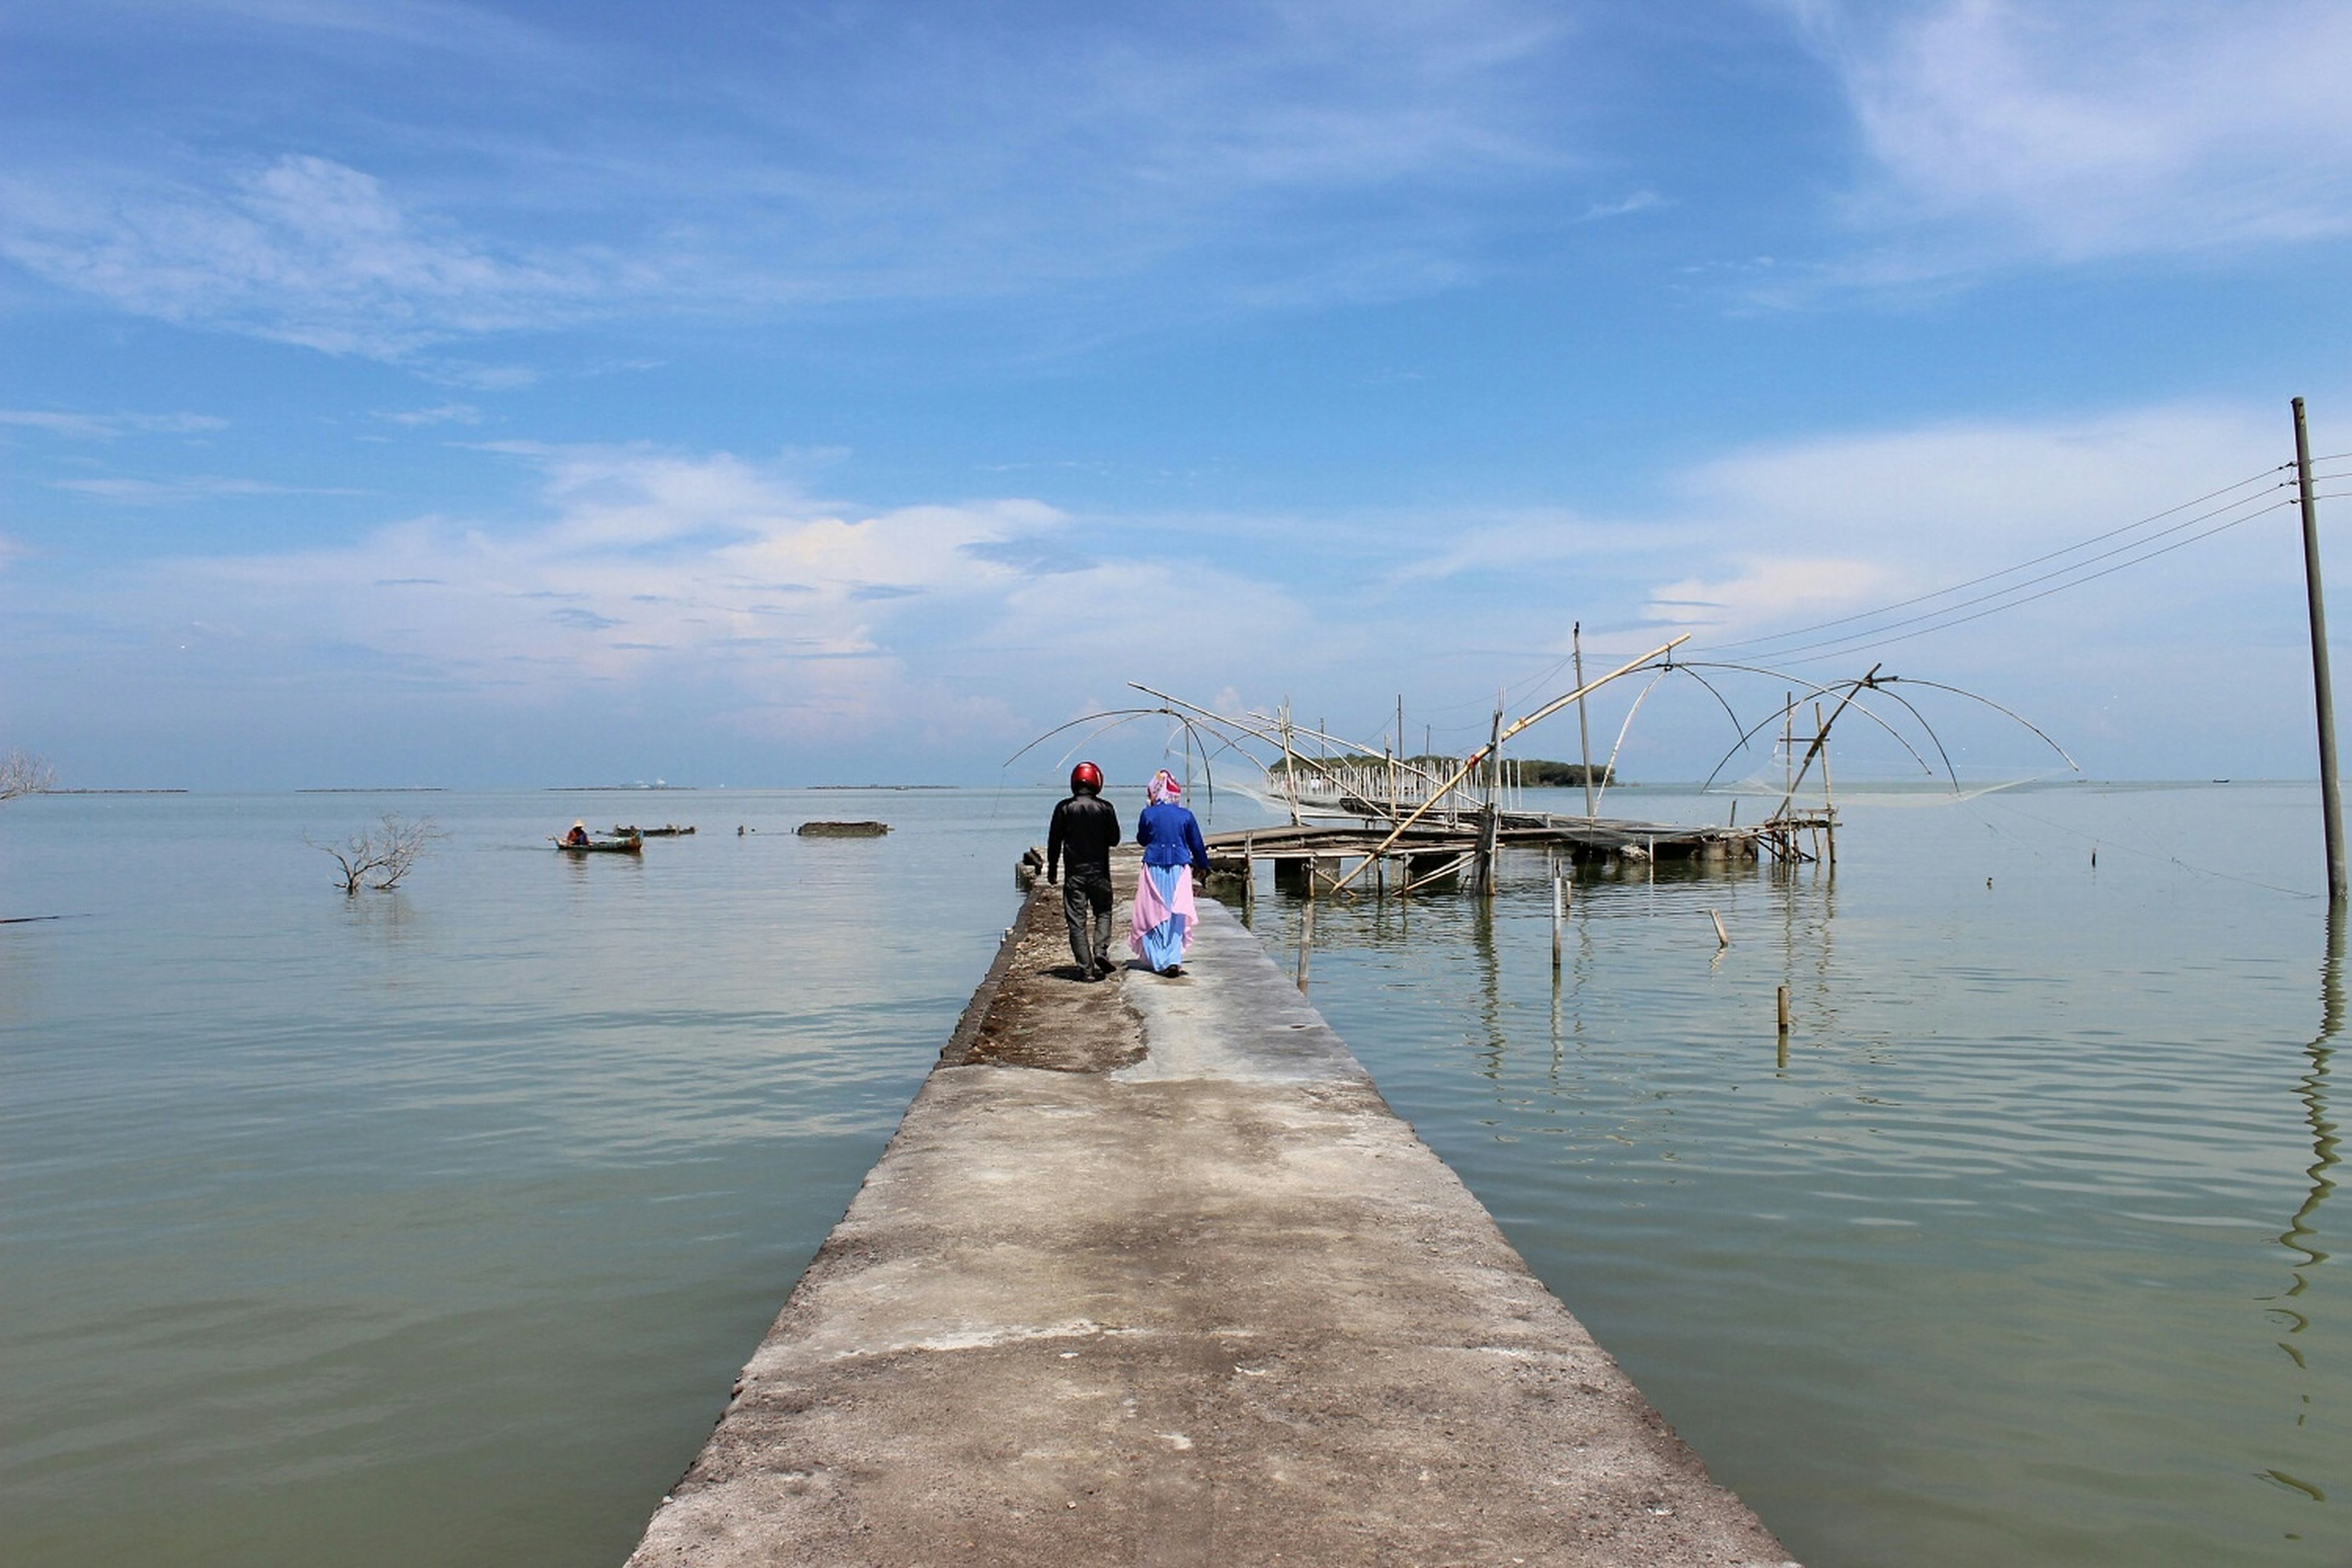 water, sky, sea, transportation, nautical vessel, horizon over water, cloud - sky, tranquility, the way forward, tranquil scene, nature, mode of transport, men, scenics, cloud, incidental people, day, beauty in nature, boat